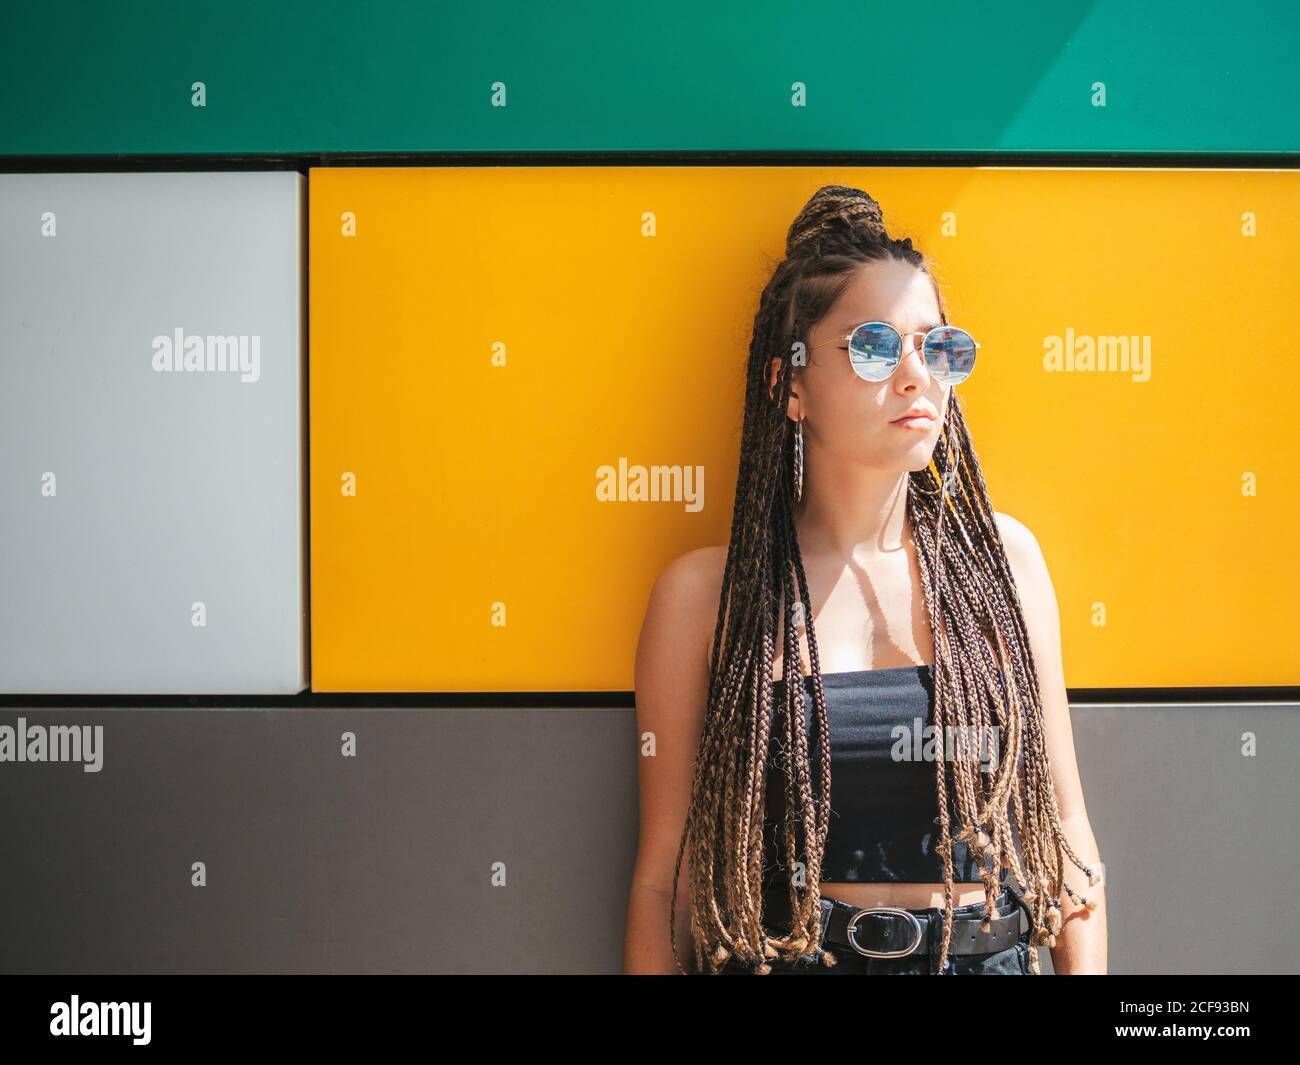 Pretty stylish teenage girl with hands in pocket and unique dreadlocks looking away on colorful background Stock Photo